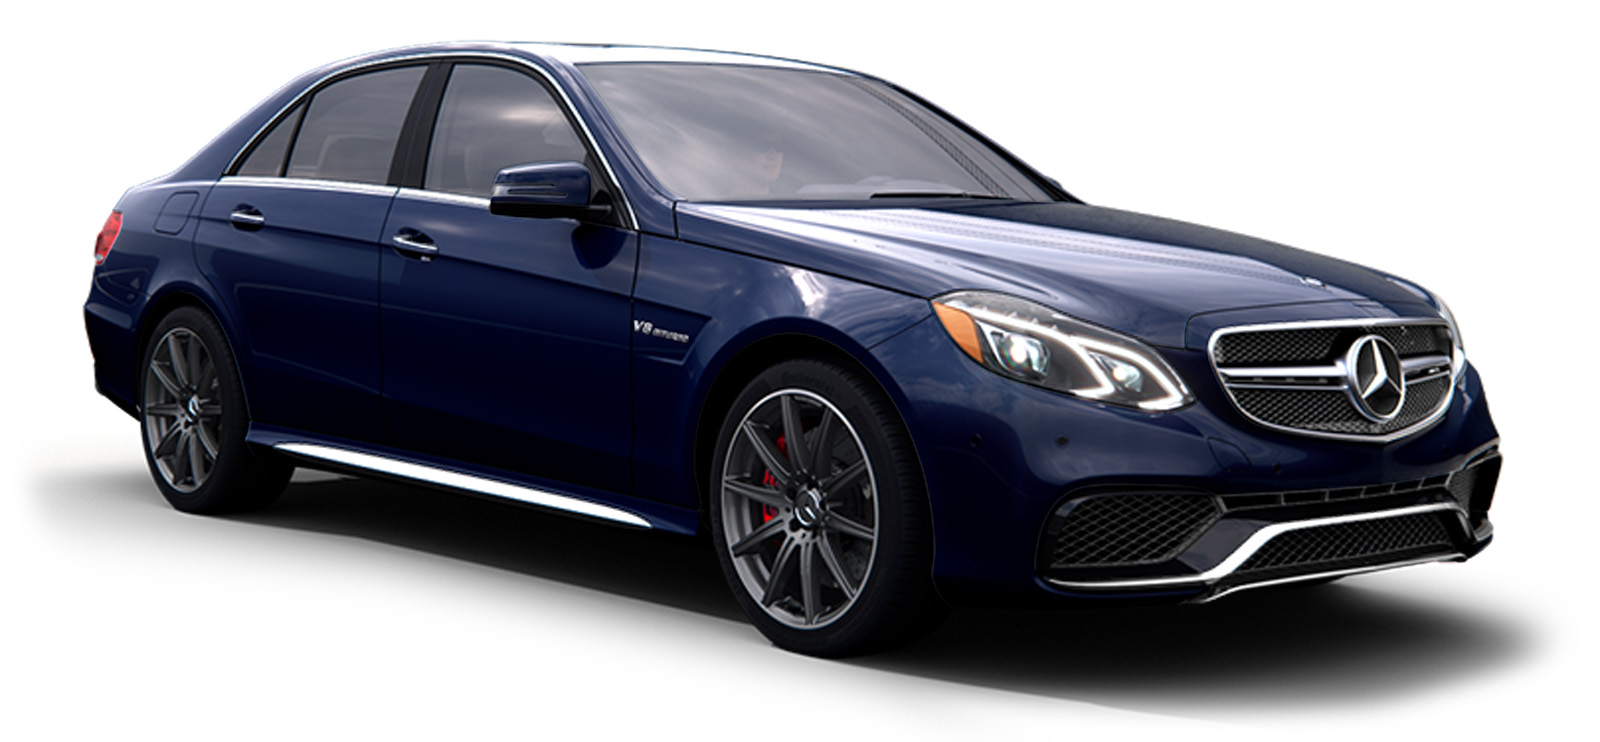 2015 mercedes benz e class blue 200 interior and exterior images. Black Bedroom Furniture Sets. Home Design Ideas